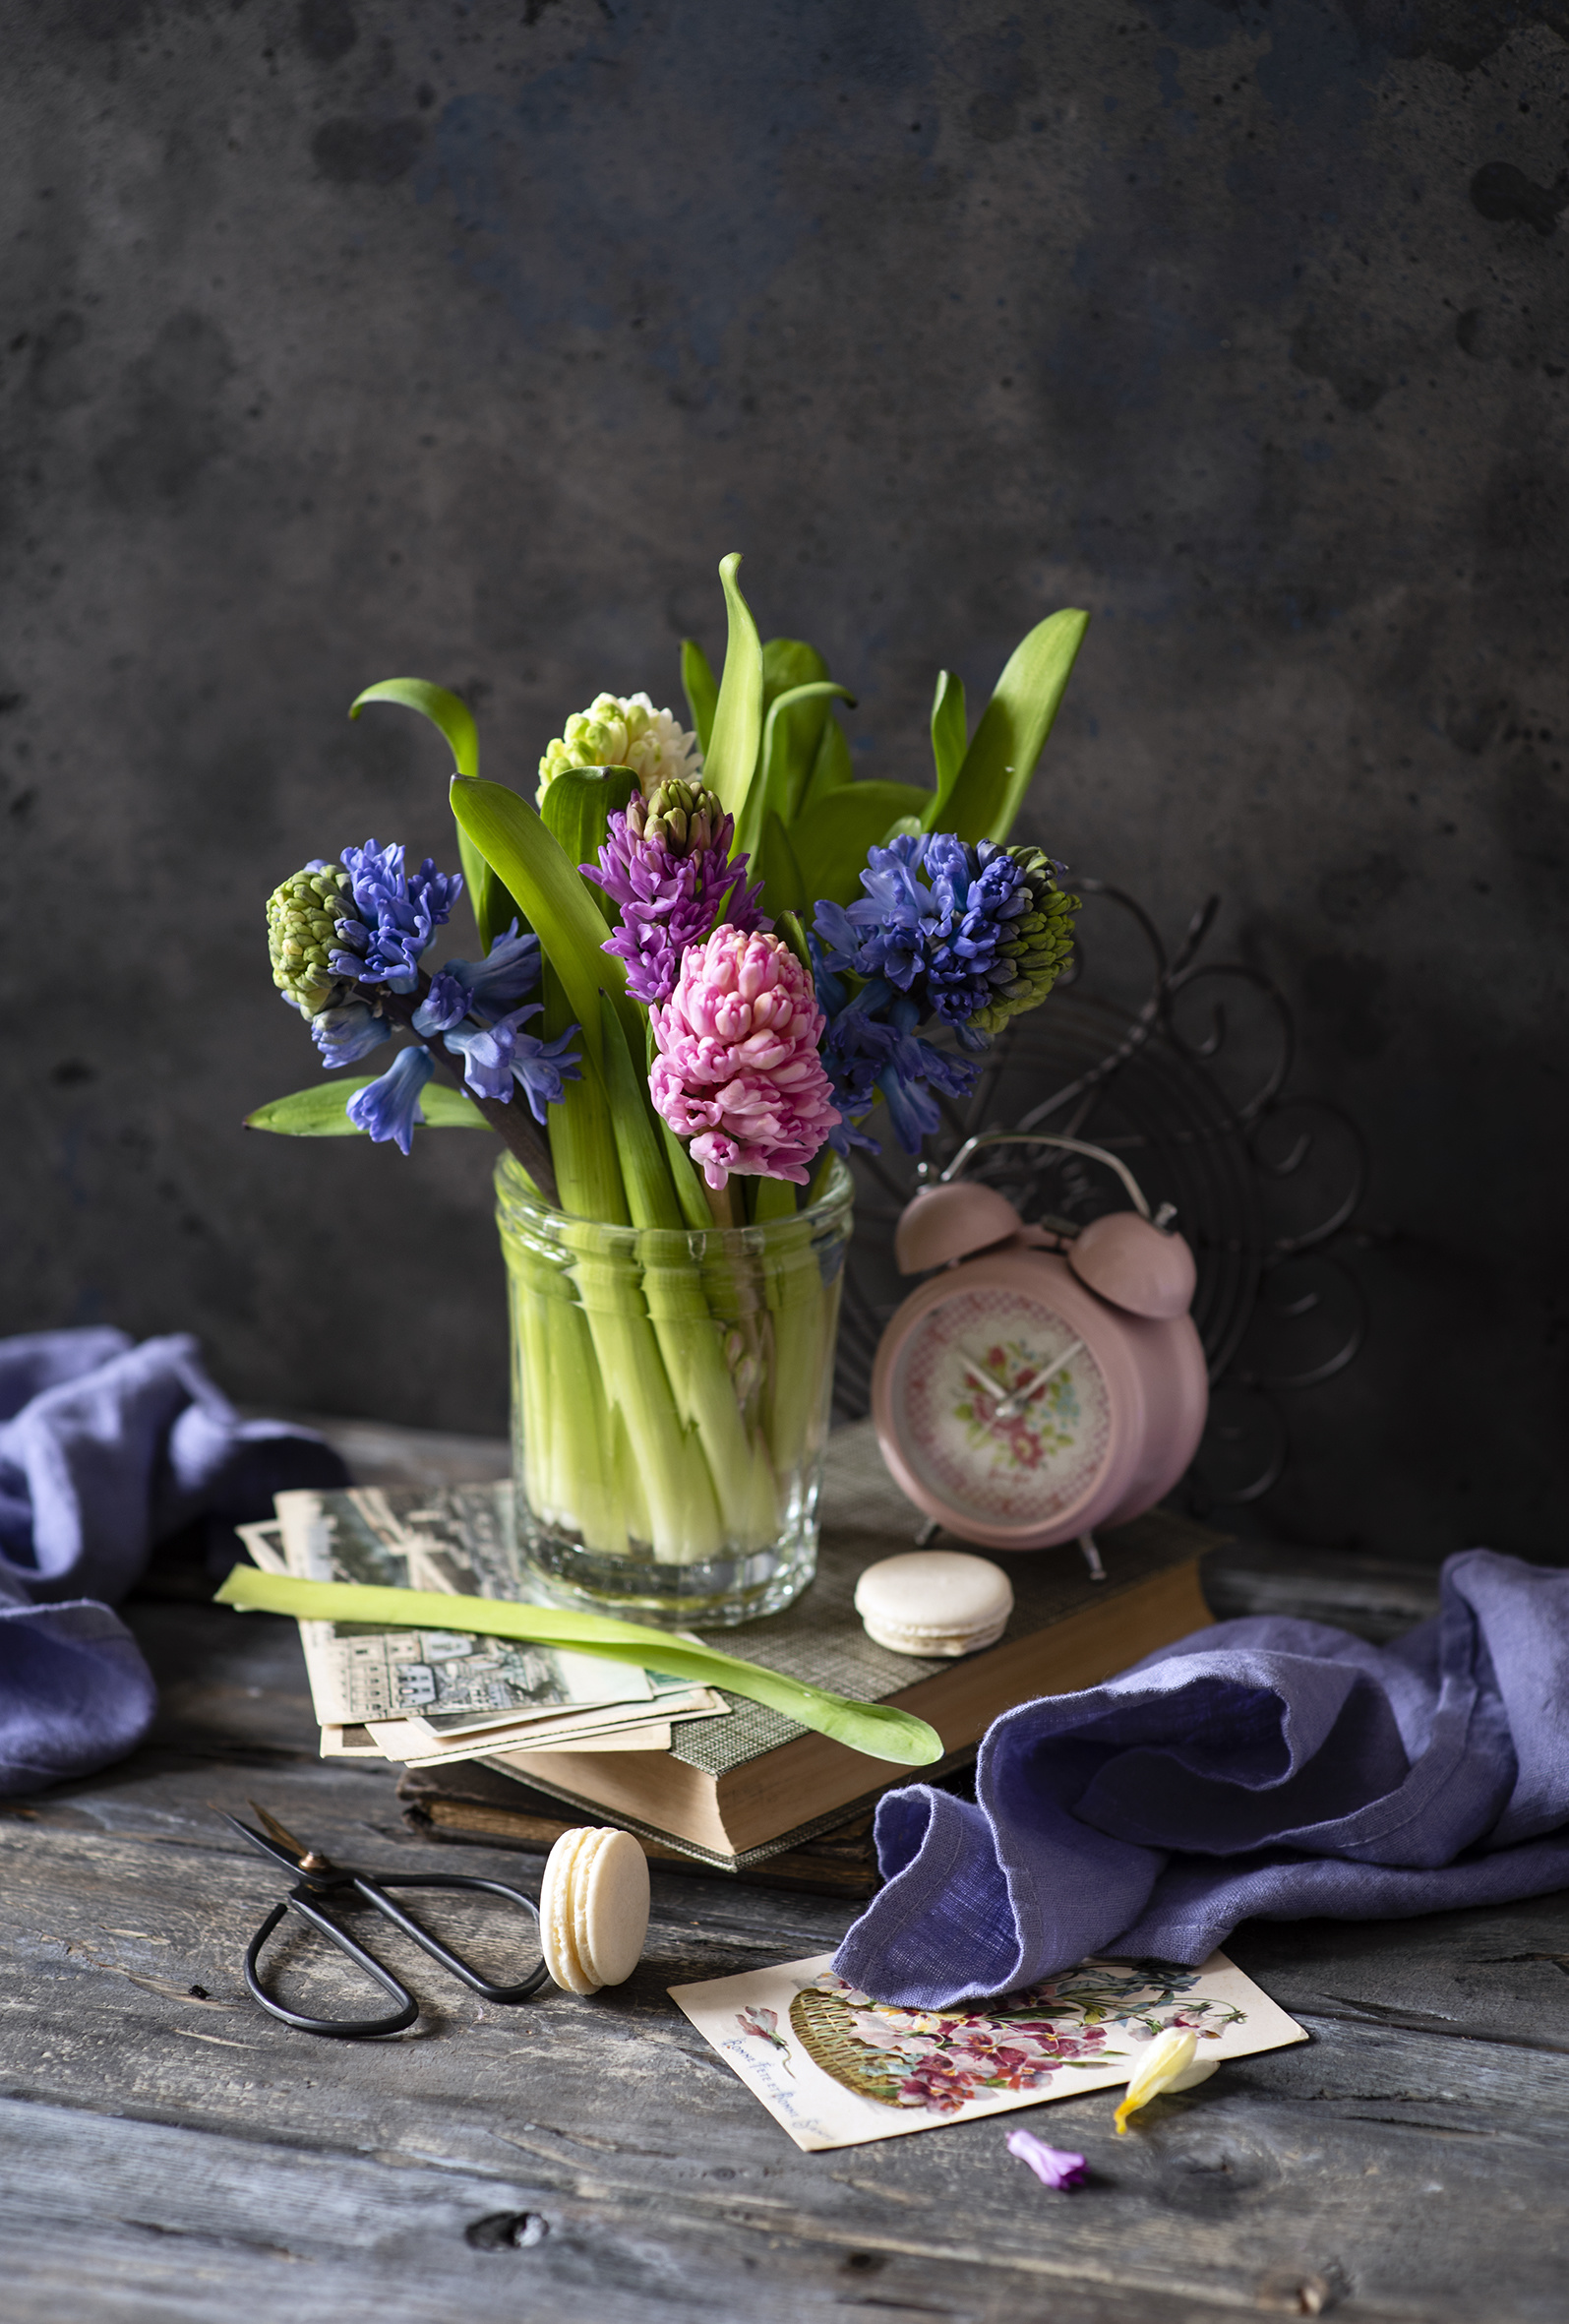 Desktop Wallpapers Macaron Flowers Alarm clock Hyacinths Still-life Wood planks  for Mobile phone french macarons flower boards